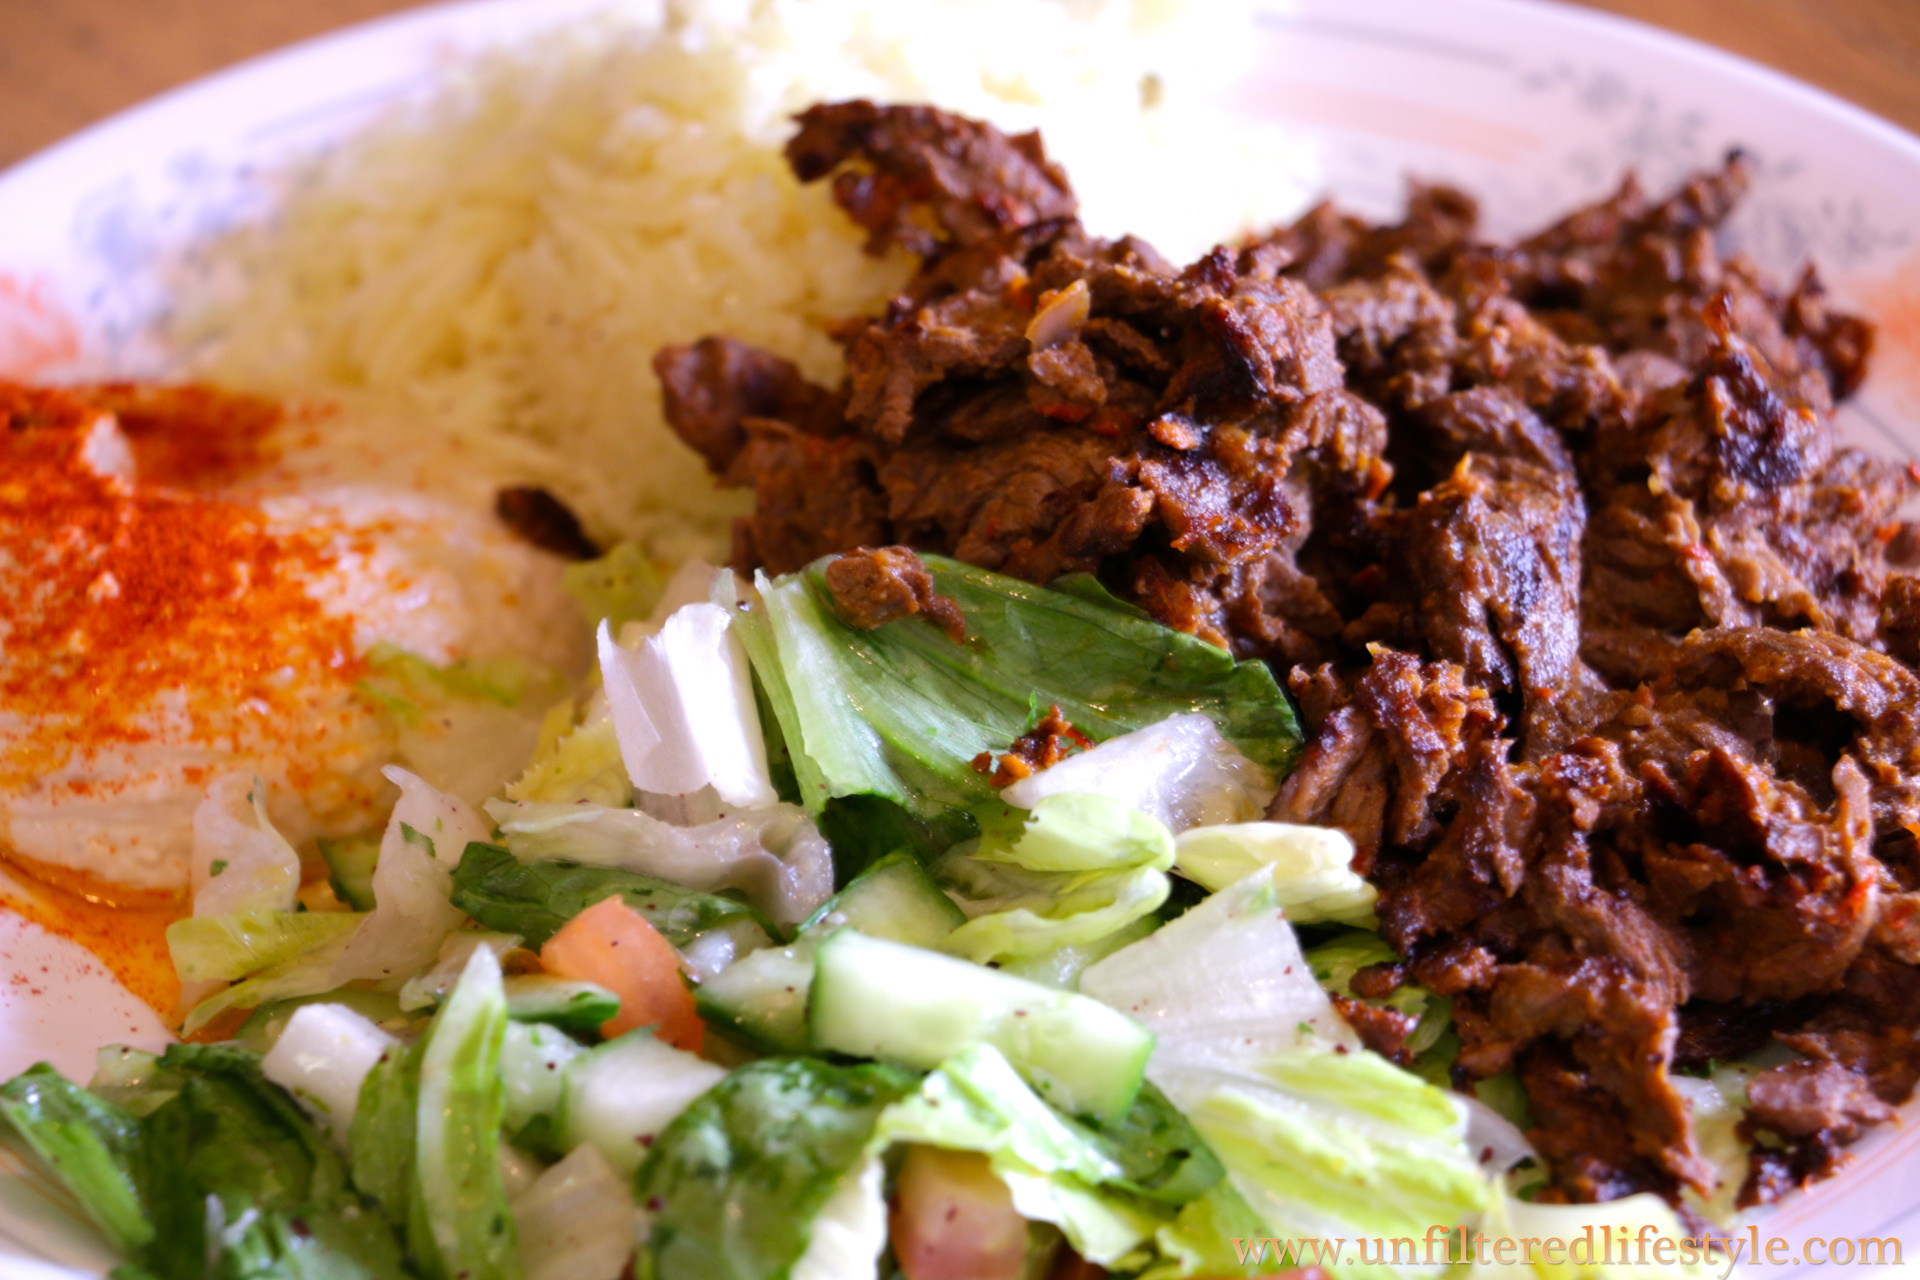 The signature dish, beef shawarma plate, my boy's favorite at Baba's Kitchen.